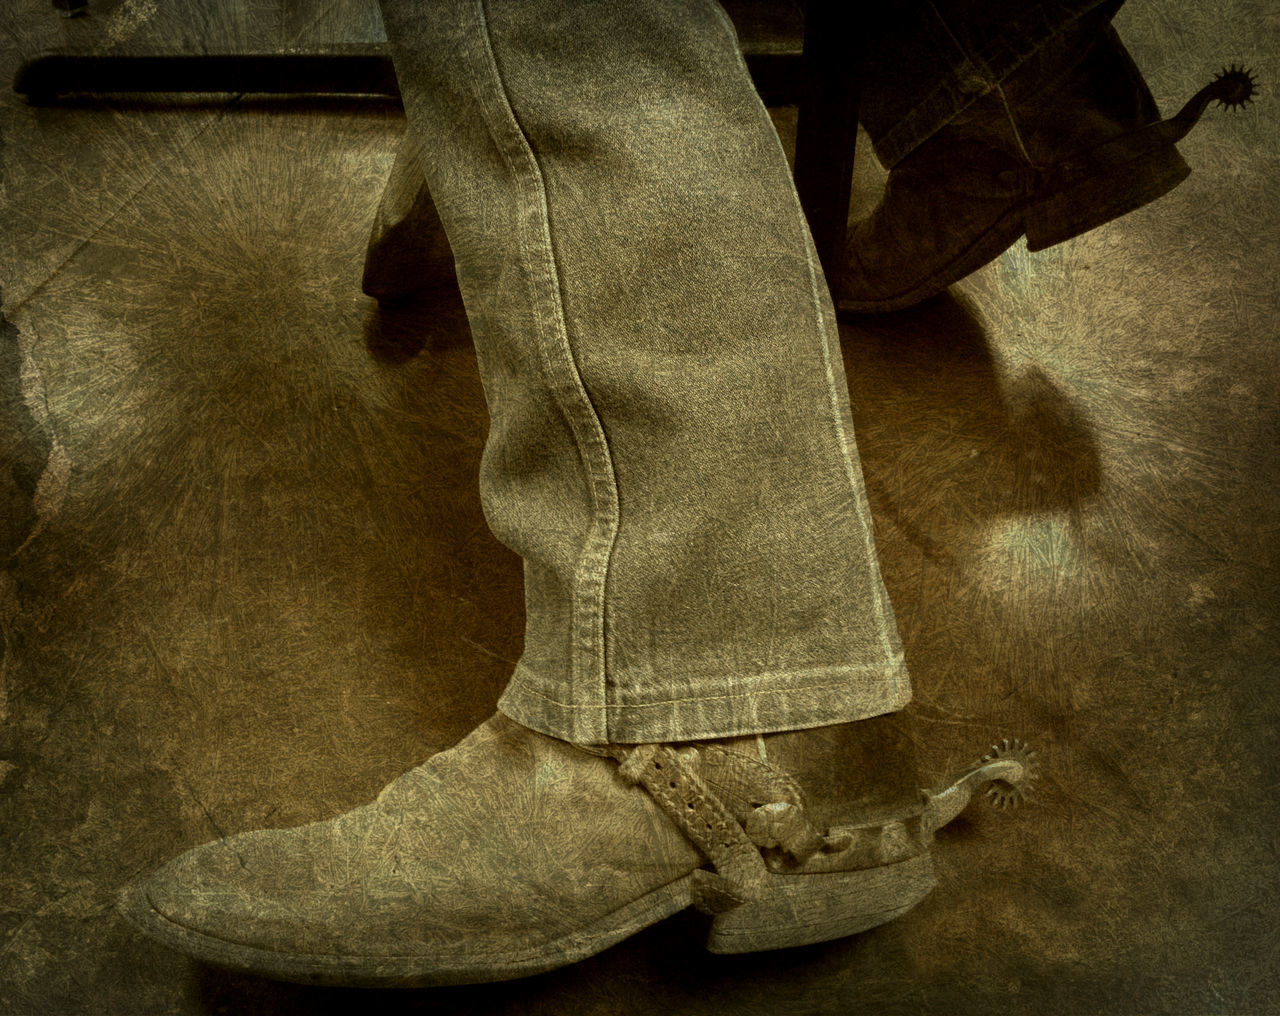 Adult Adults Only Casual Clothing Close-up Cowboy Cowboy Boots Day Human Body Part Human Hand Human Leg Indoors  Jeans Low Section Men One Man Only One Person Only Men People Spurs